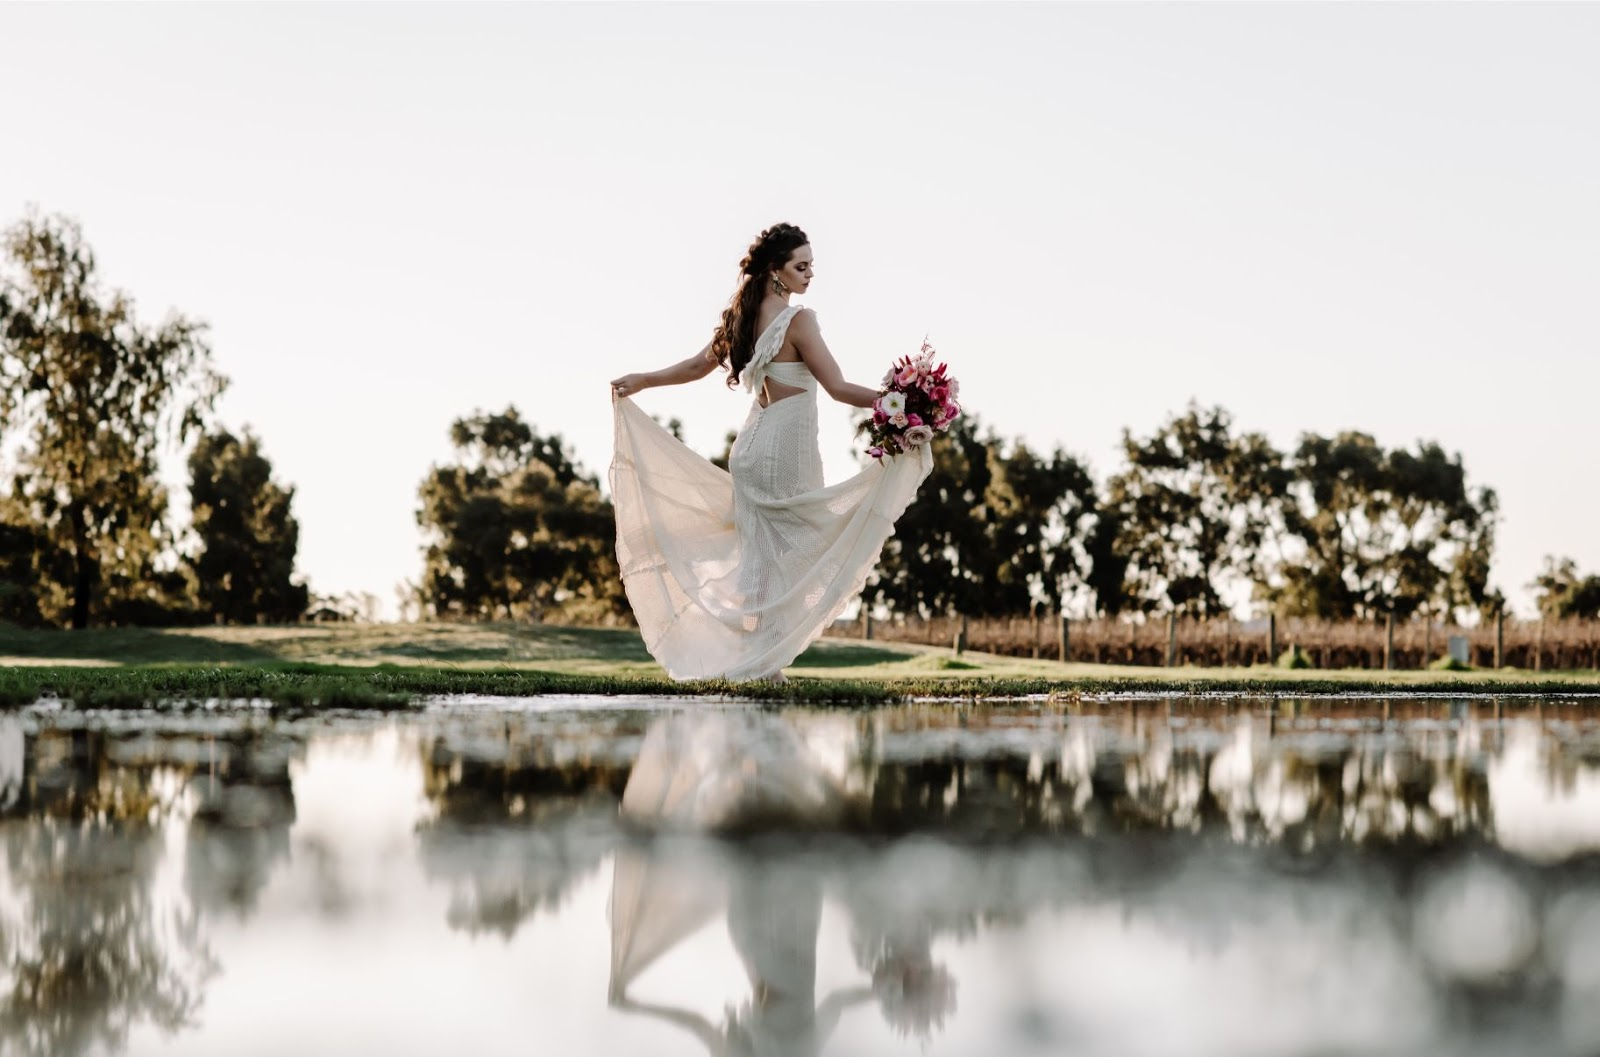 sandie bertrand photography perth weddings bridal gowns floral designer venue styling